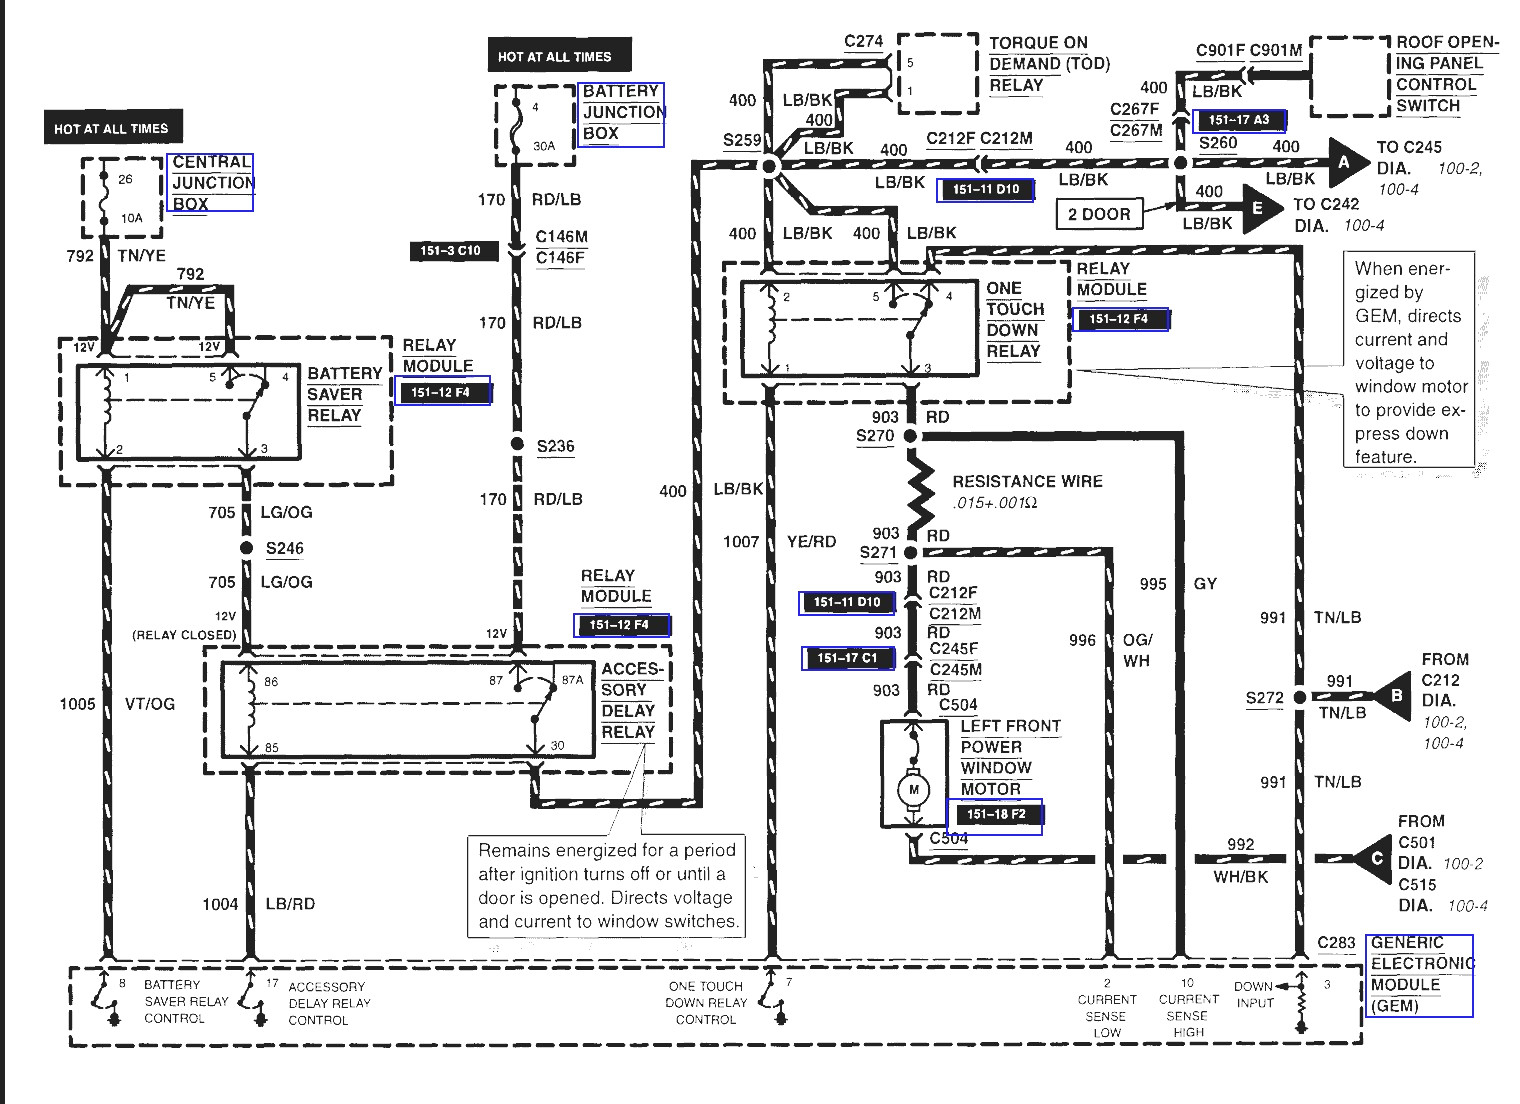 Ford Excursion Wiring Diagram Unique Ford Excursion Wiring Diagram Inspiration Revise With Q on F Fuse Panel Set Up Data Wiring Diagrams Ford